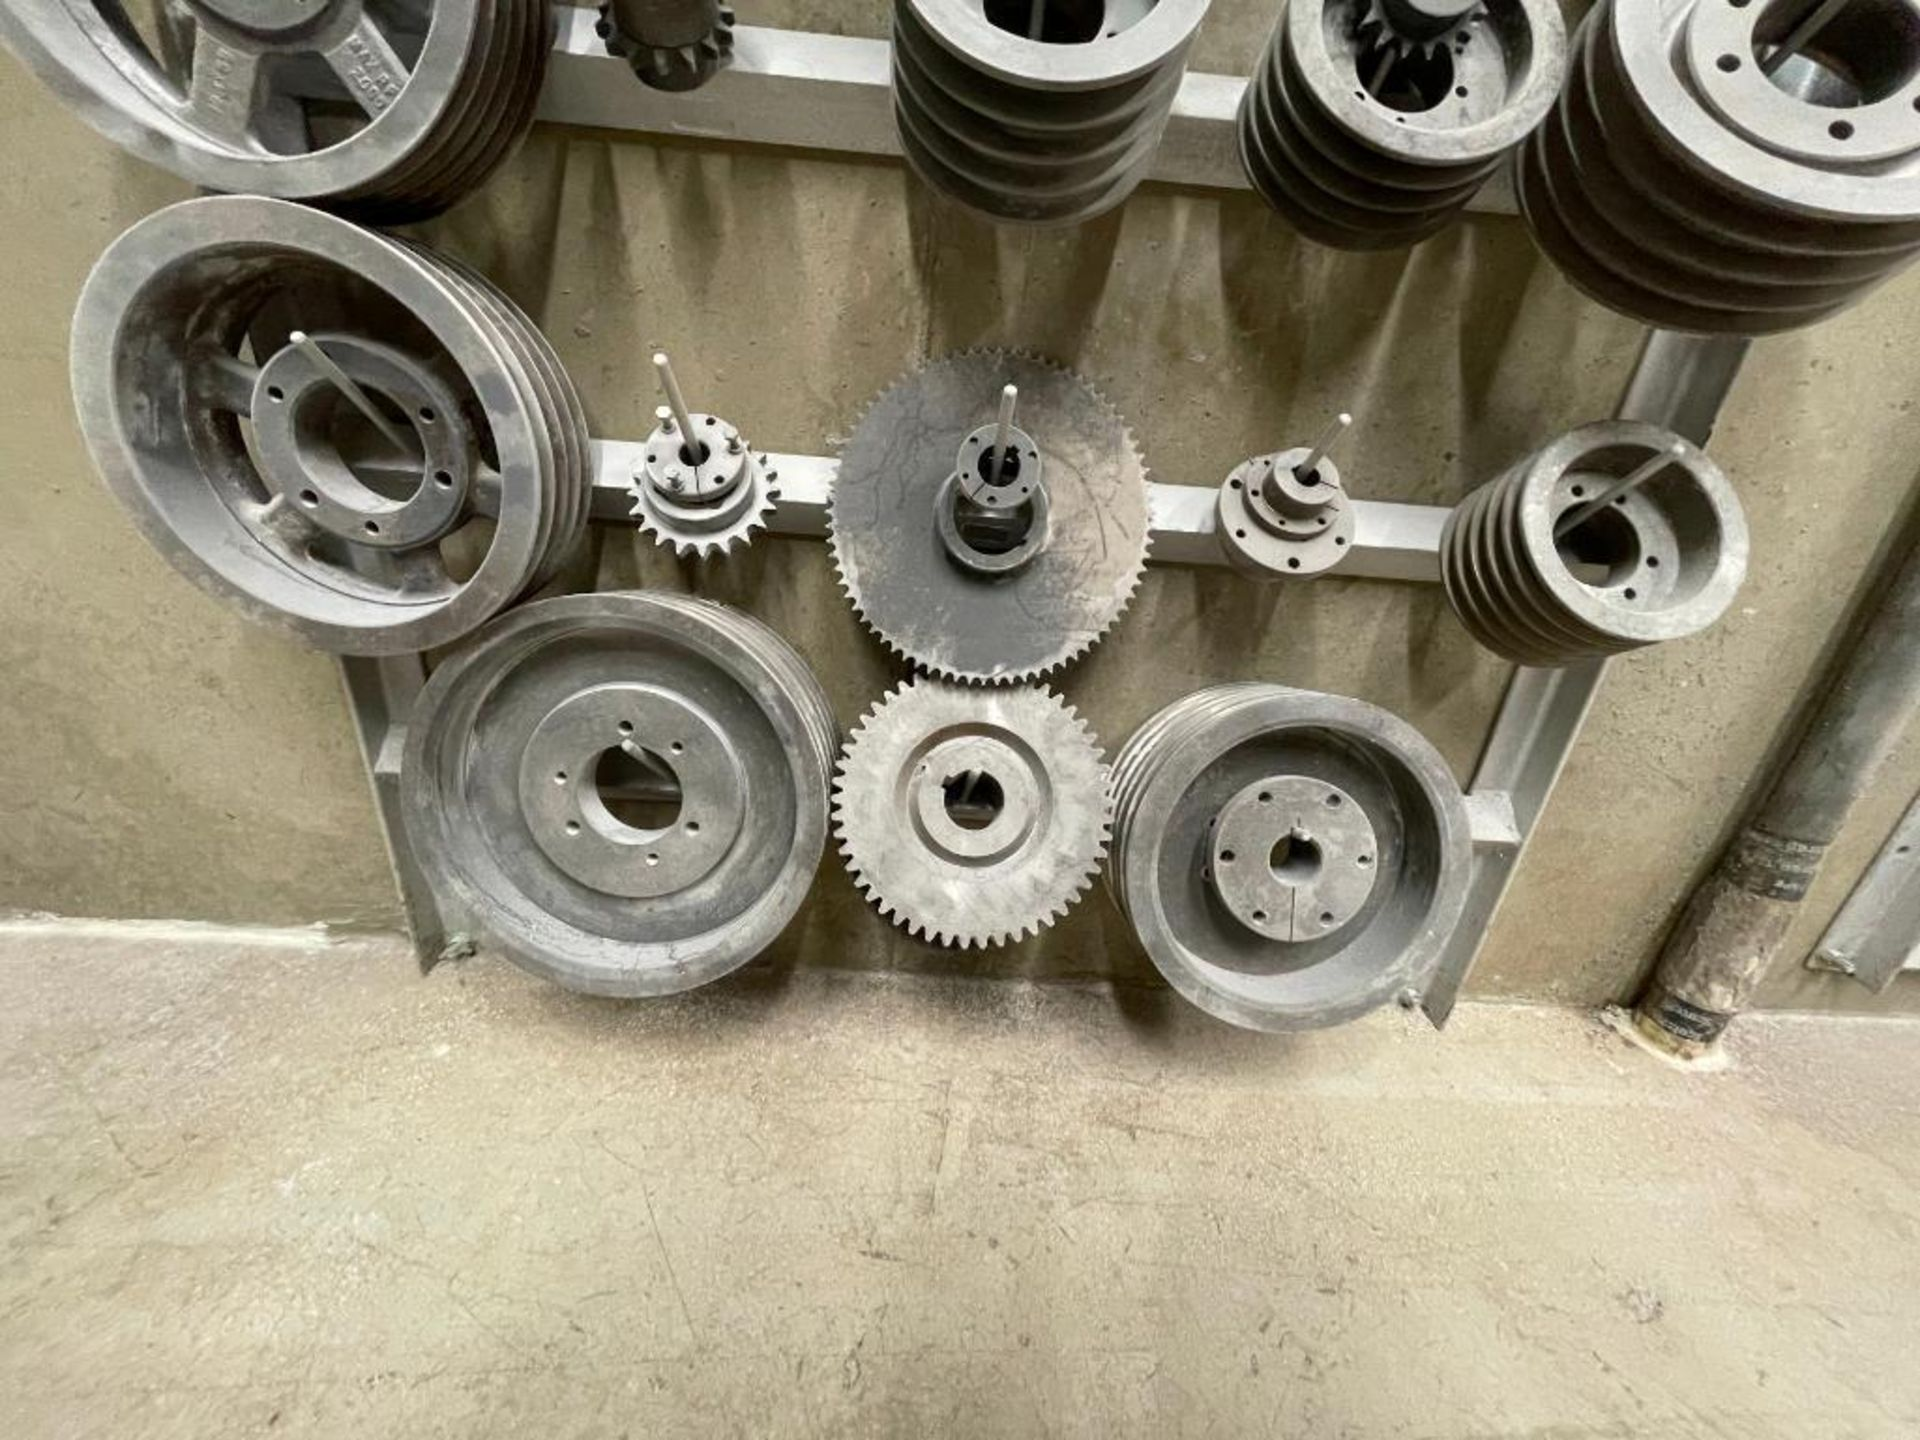 gears and pulleys - Image 9 of 17